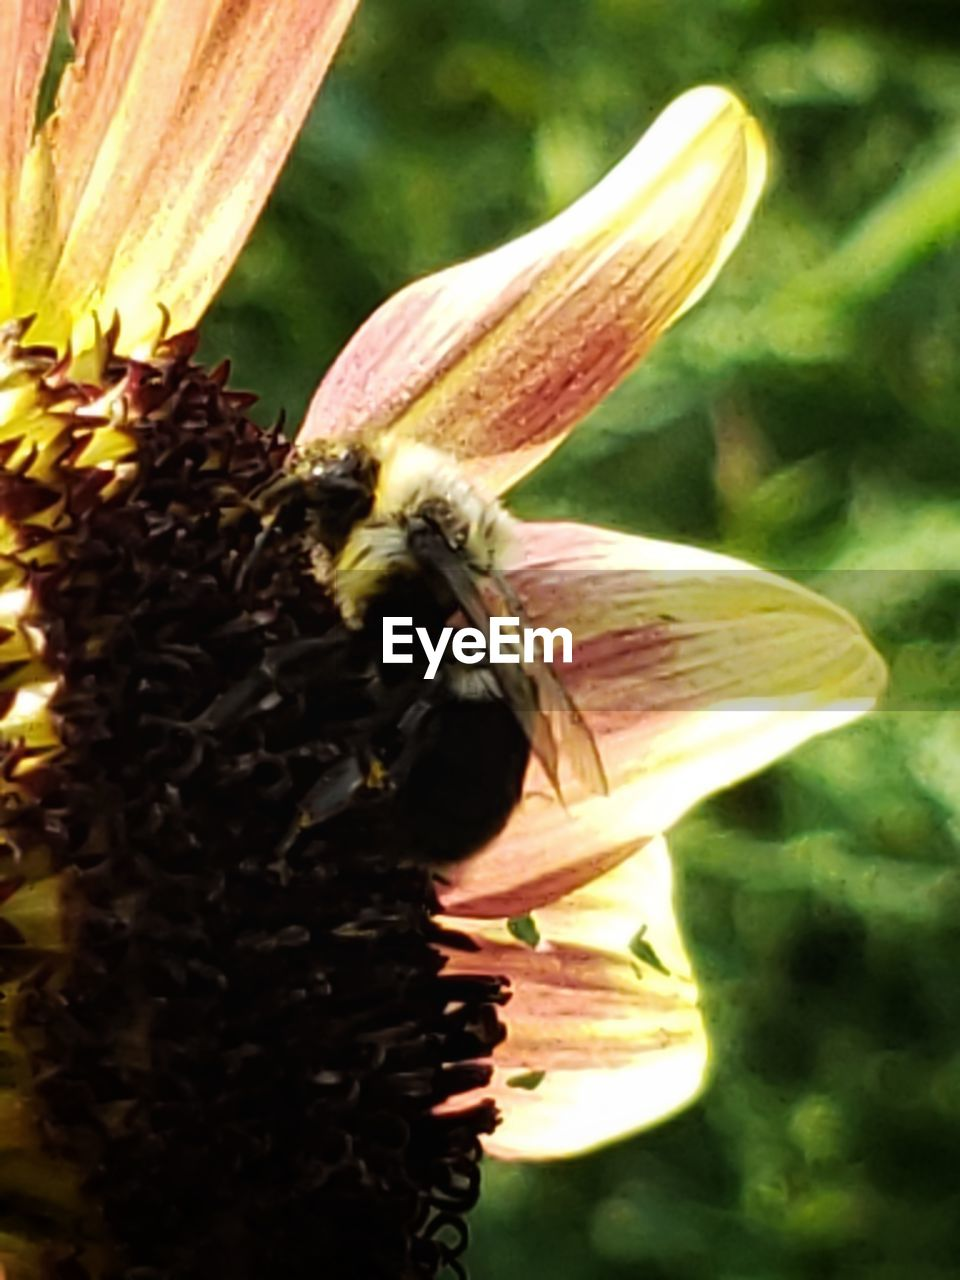 invertebrate, close-up, flowering plant, flower, insect, growth, animals in the wild, animal, animal themes, plant, one animal, bee, beauty in nature, animal wildlife, freshness, petal, vulnerability, fragility, no people, flower head, pollen, pollination, outdoors